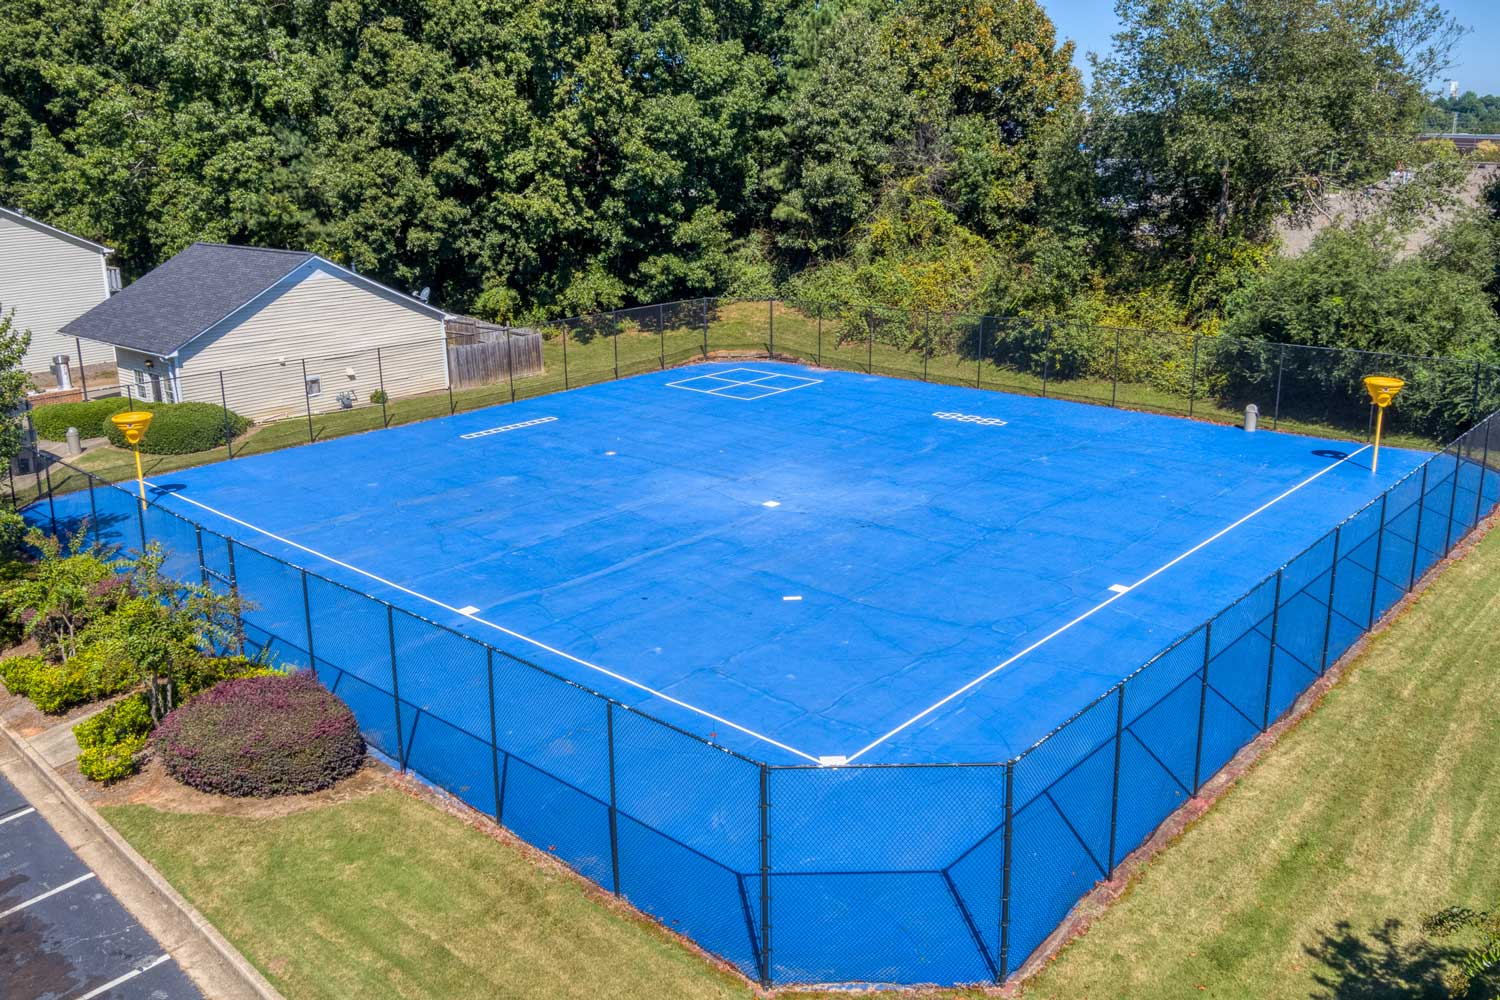 Tennis Court at Tall Oaks Apartments and Villas in Conyers, GA